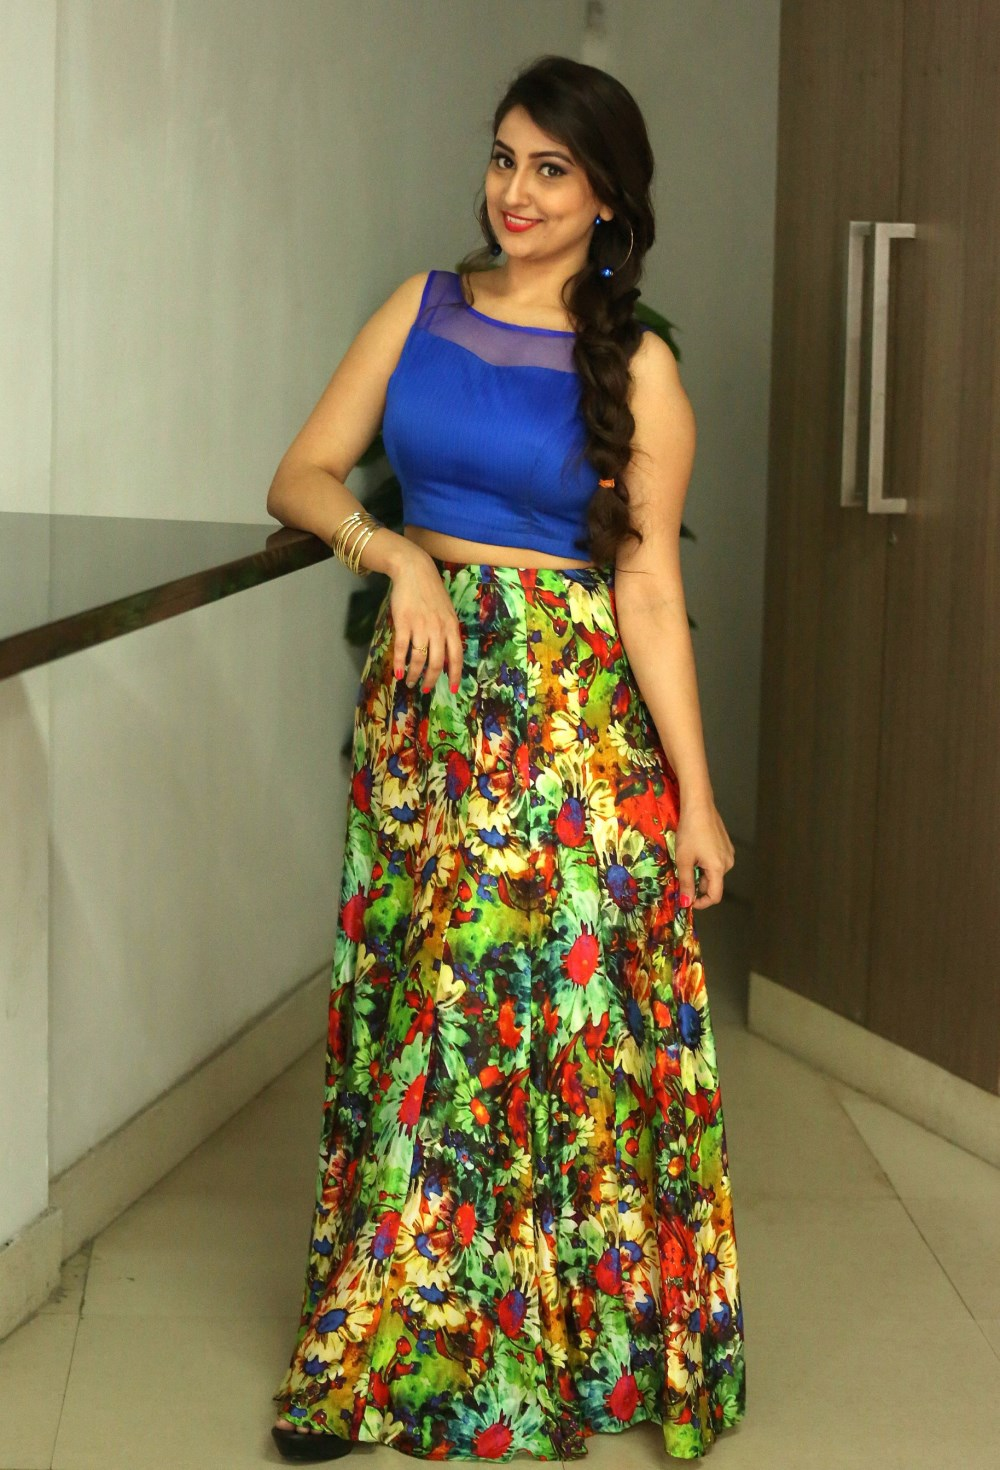 Telugu TV Anchor Manjusha Pictures